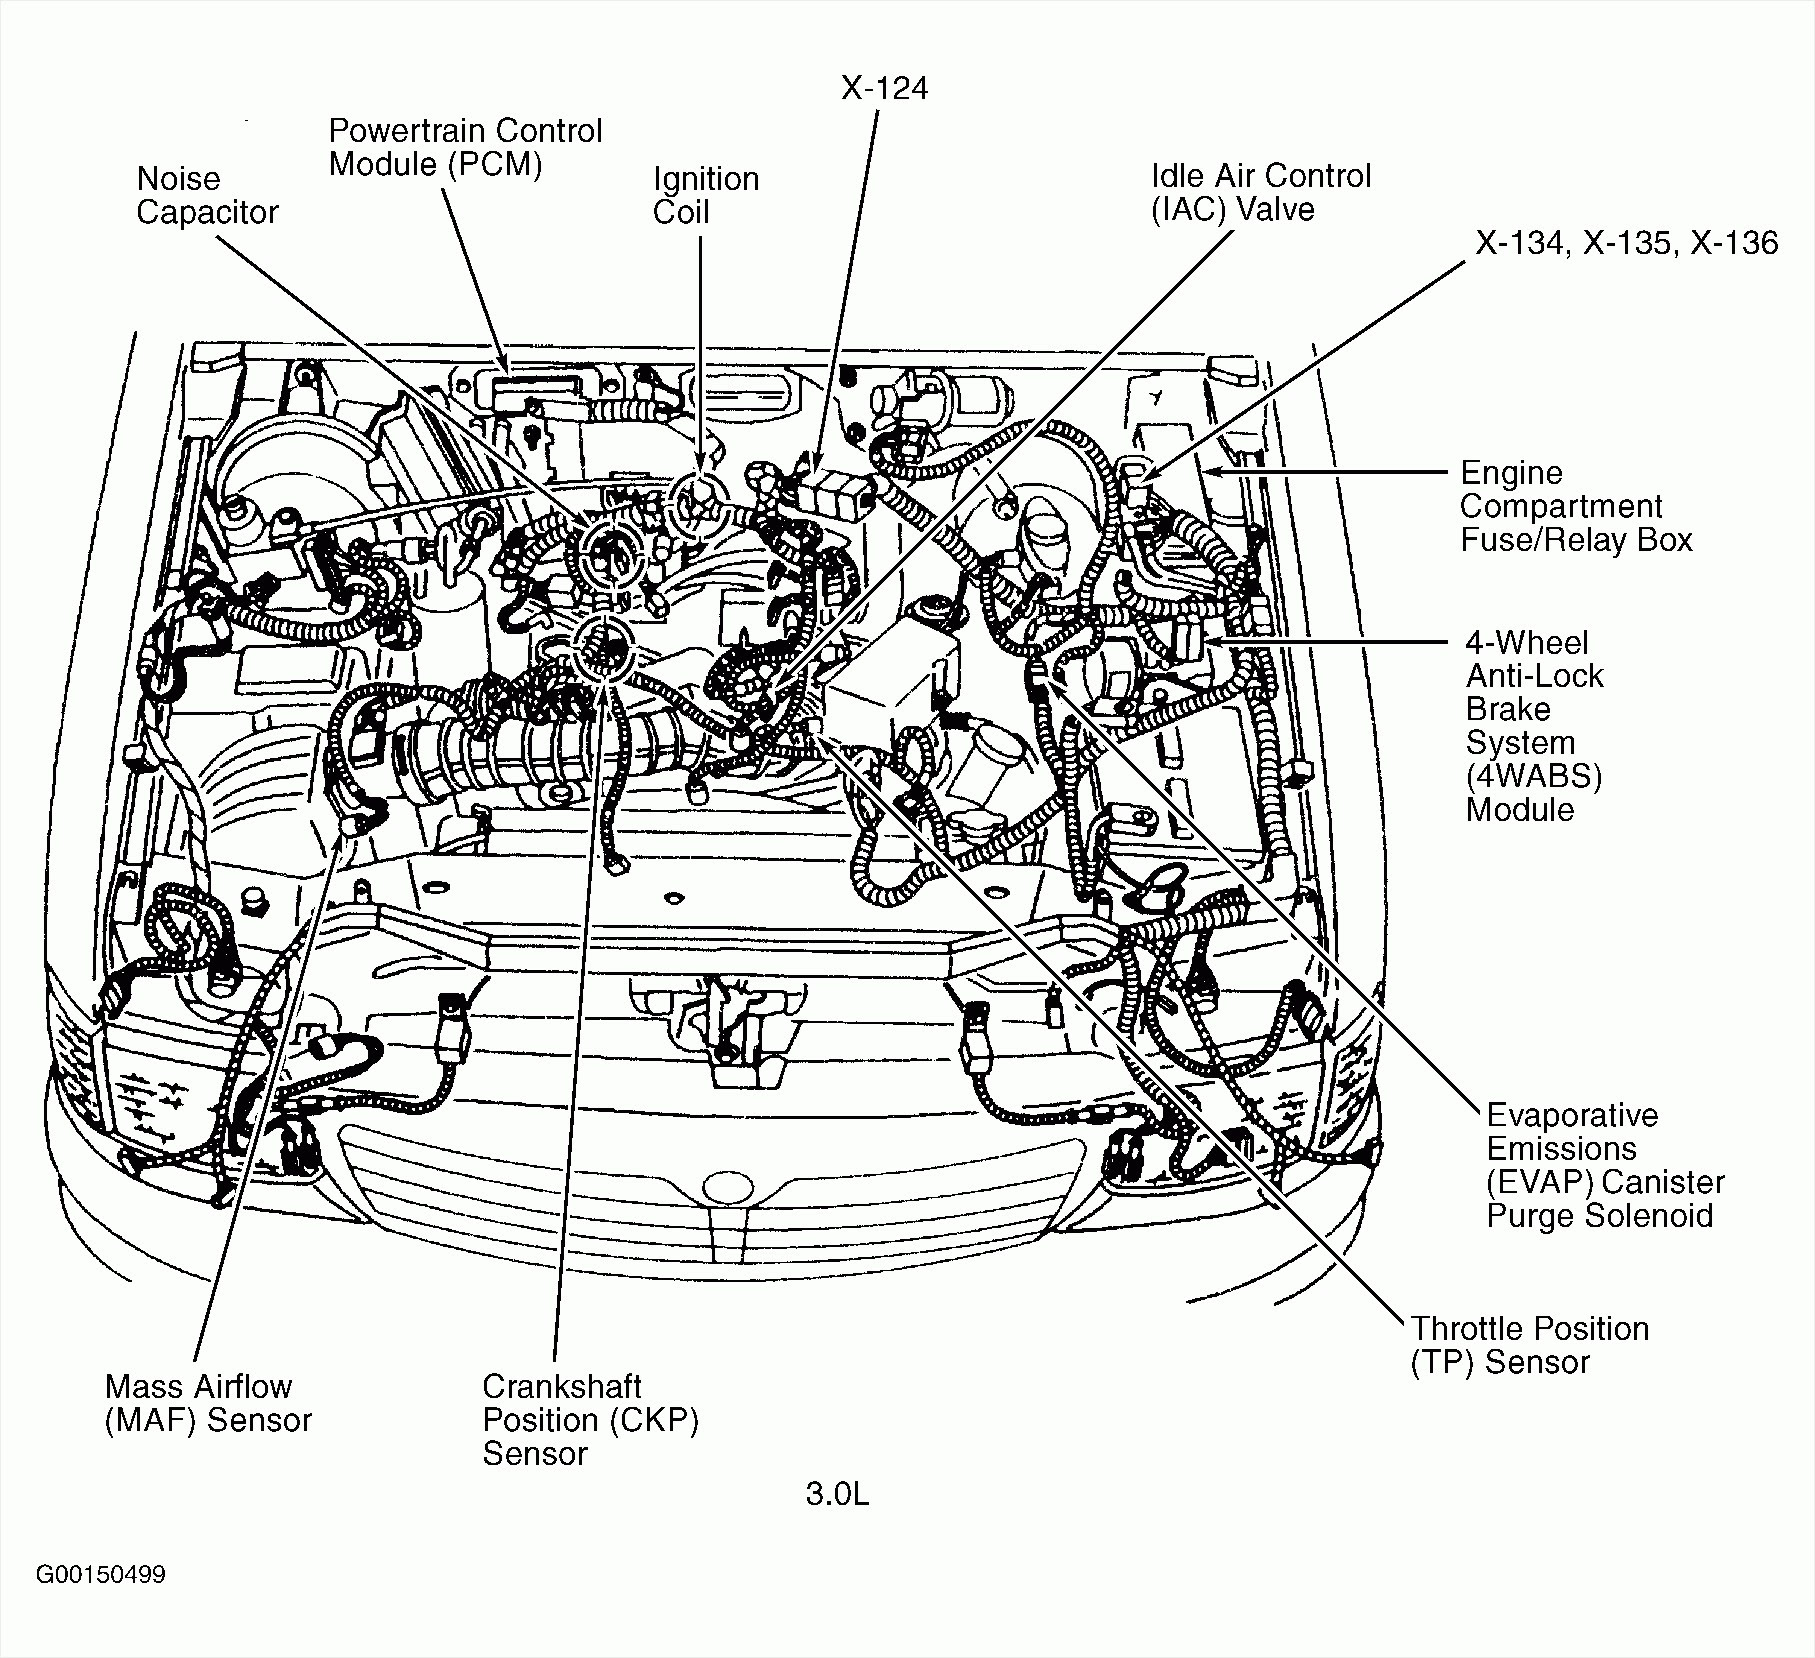 hight resolution of 2006 vw passat fuse diagram best wiring library